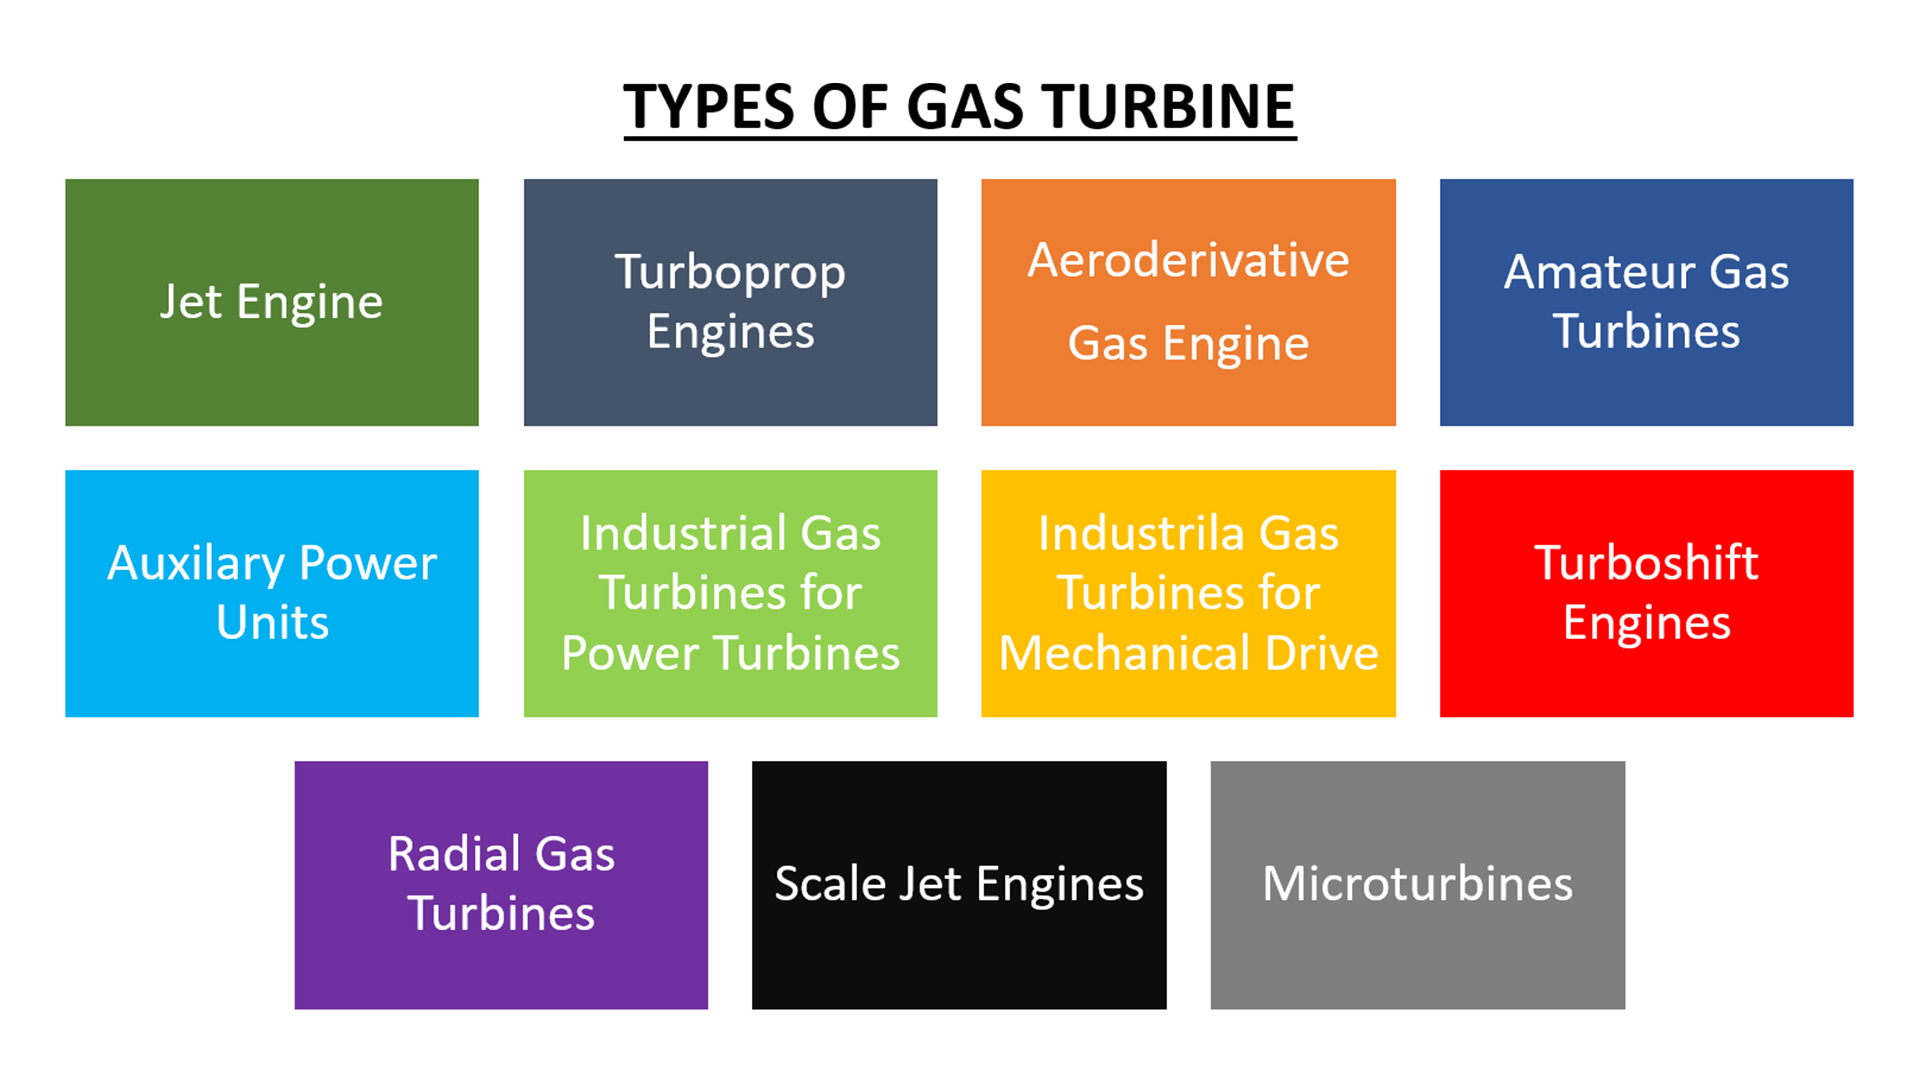 Types of gas turbins